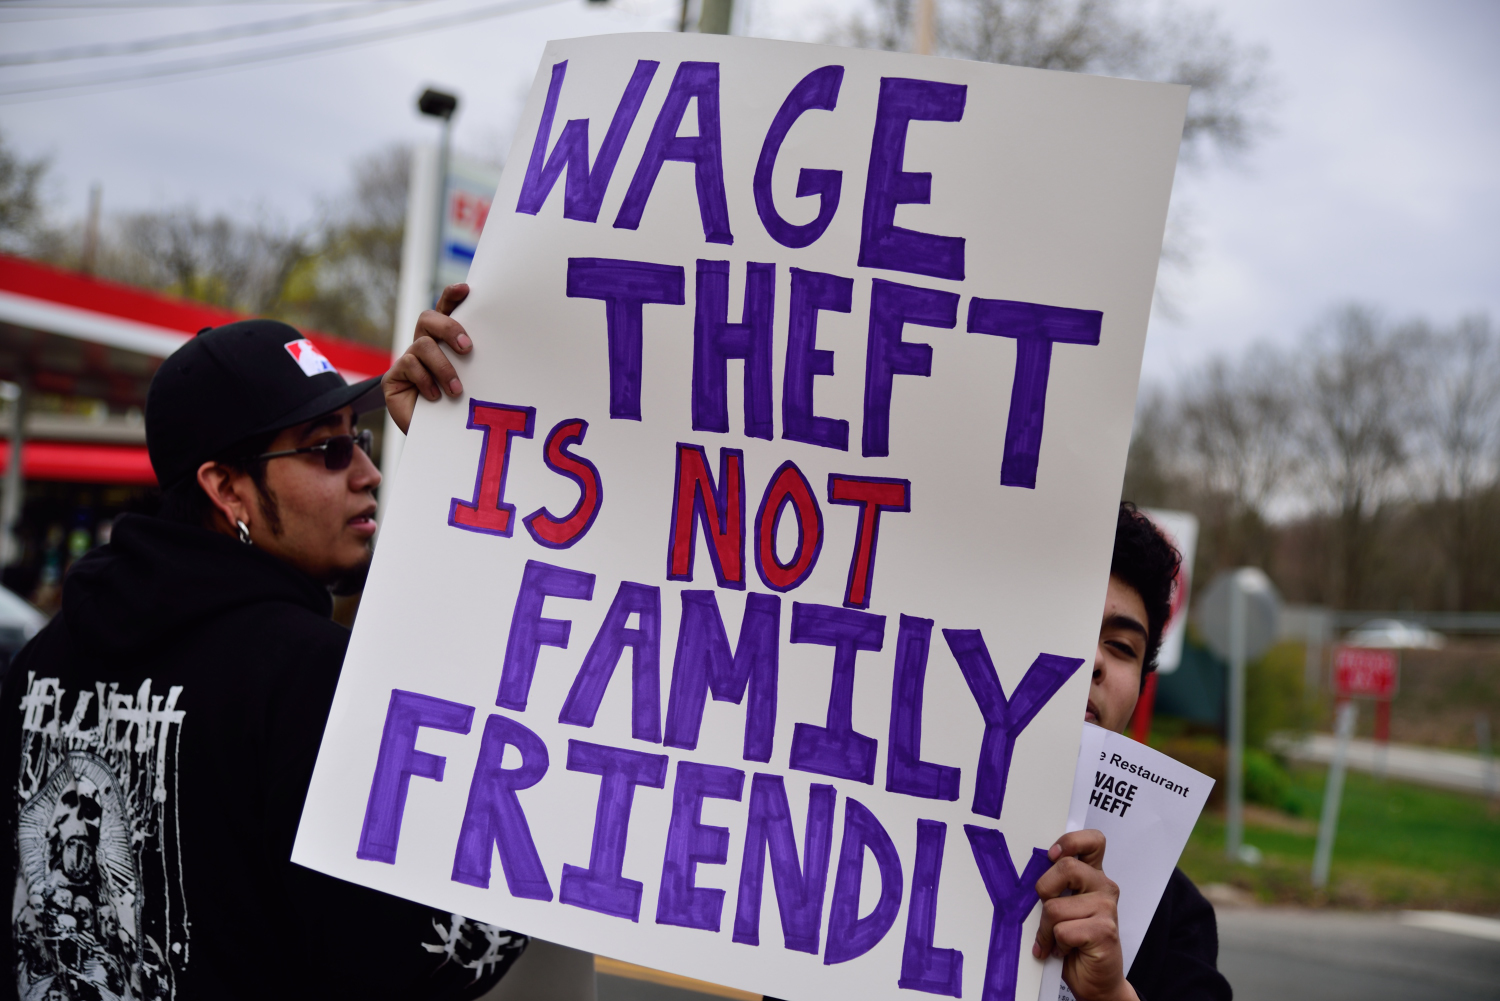 Six former workers file a federal lawsuit claiming multiple abuses such as wage theft, intimidation and physical threats by the owners of the Townhouse restaurant in Hamden, CT.